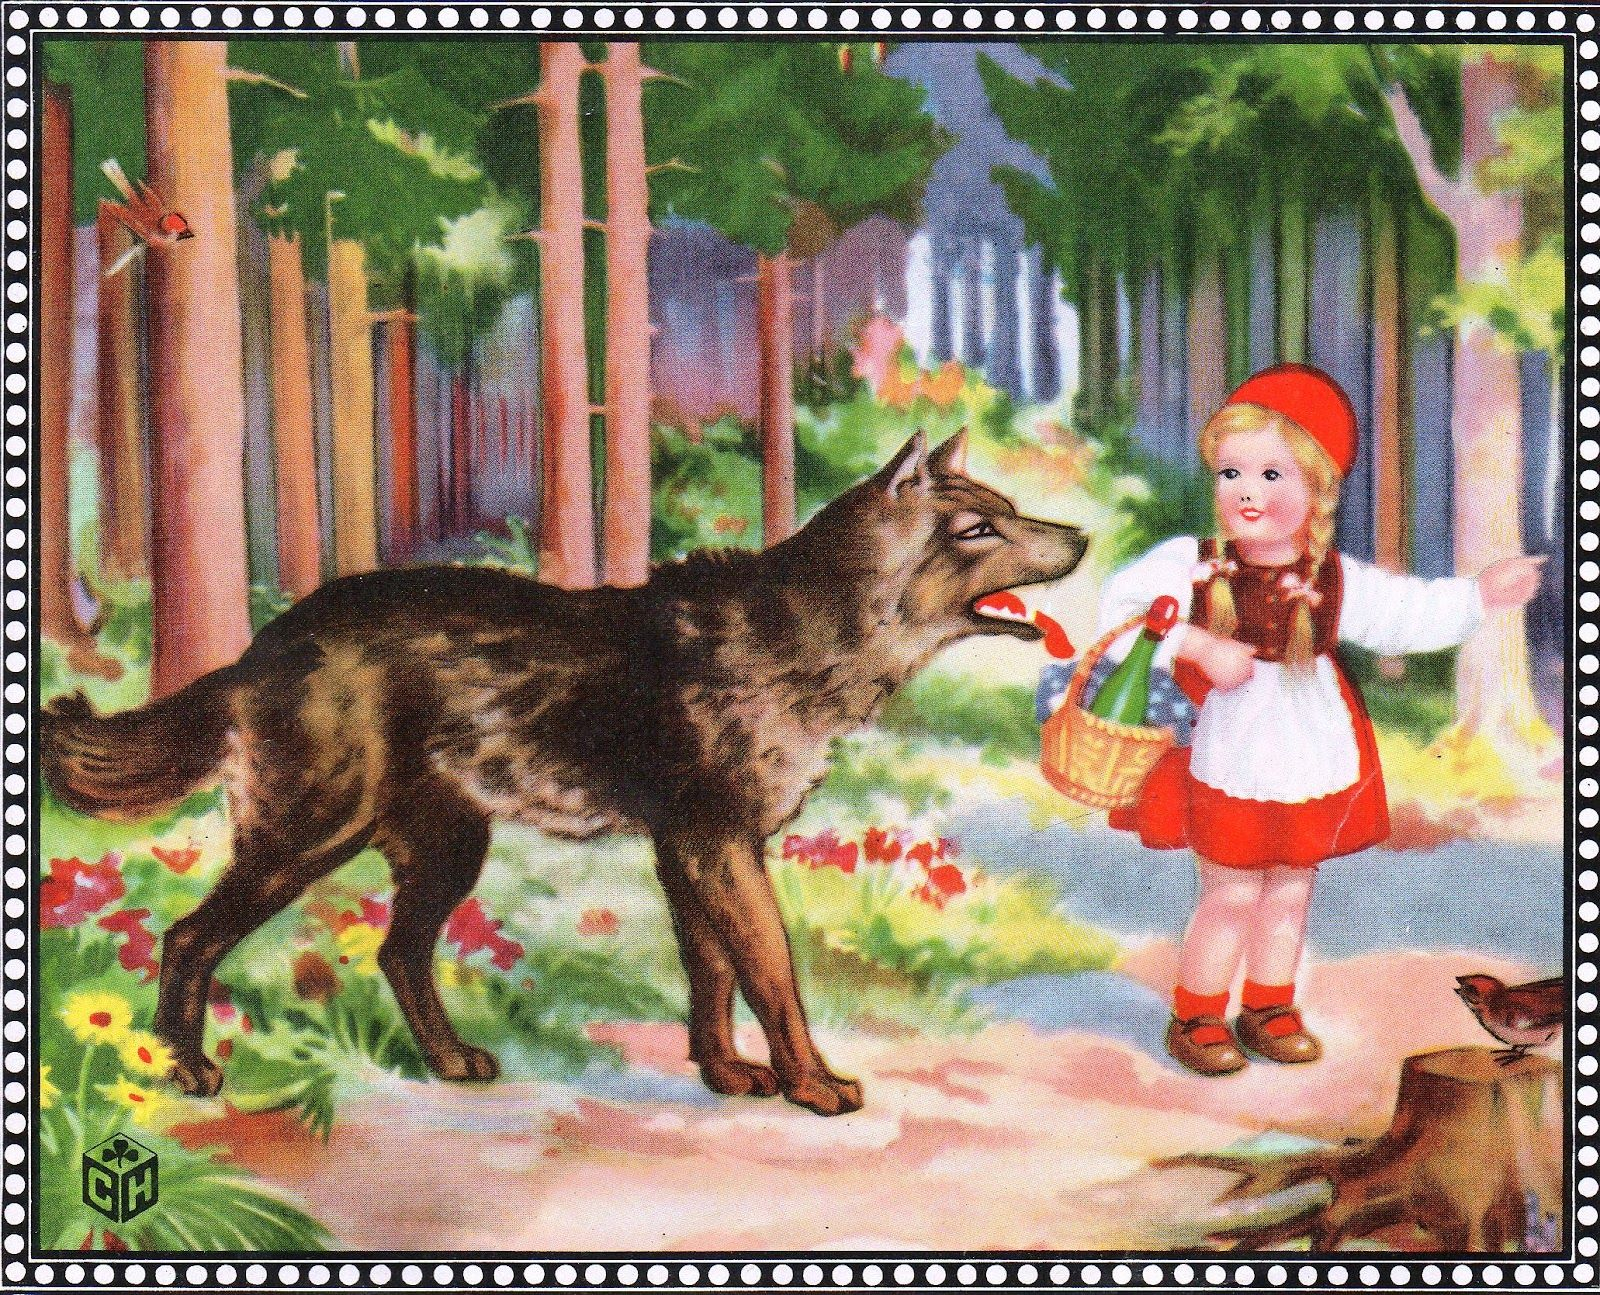 Little Red Riding Hood | LITTLE RED RIDING HOOD - VINTAGE IMAGE (2 of 6)